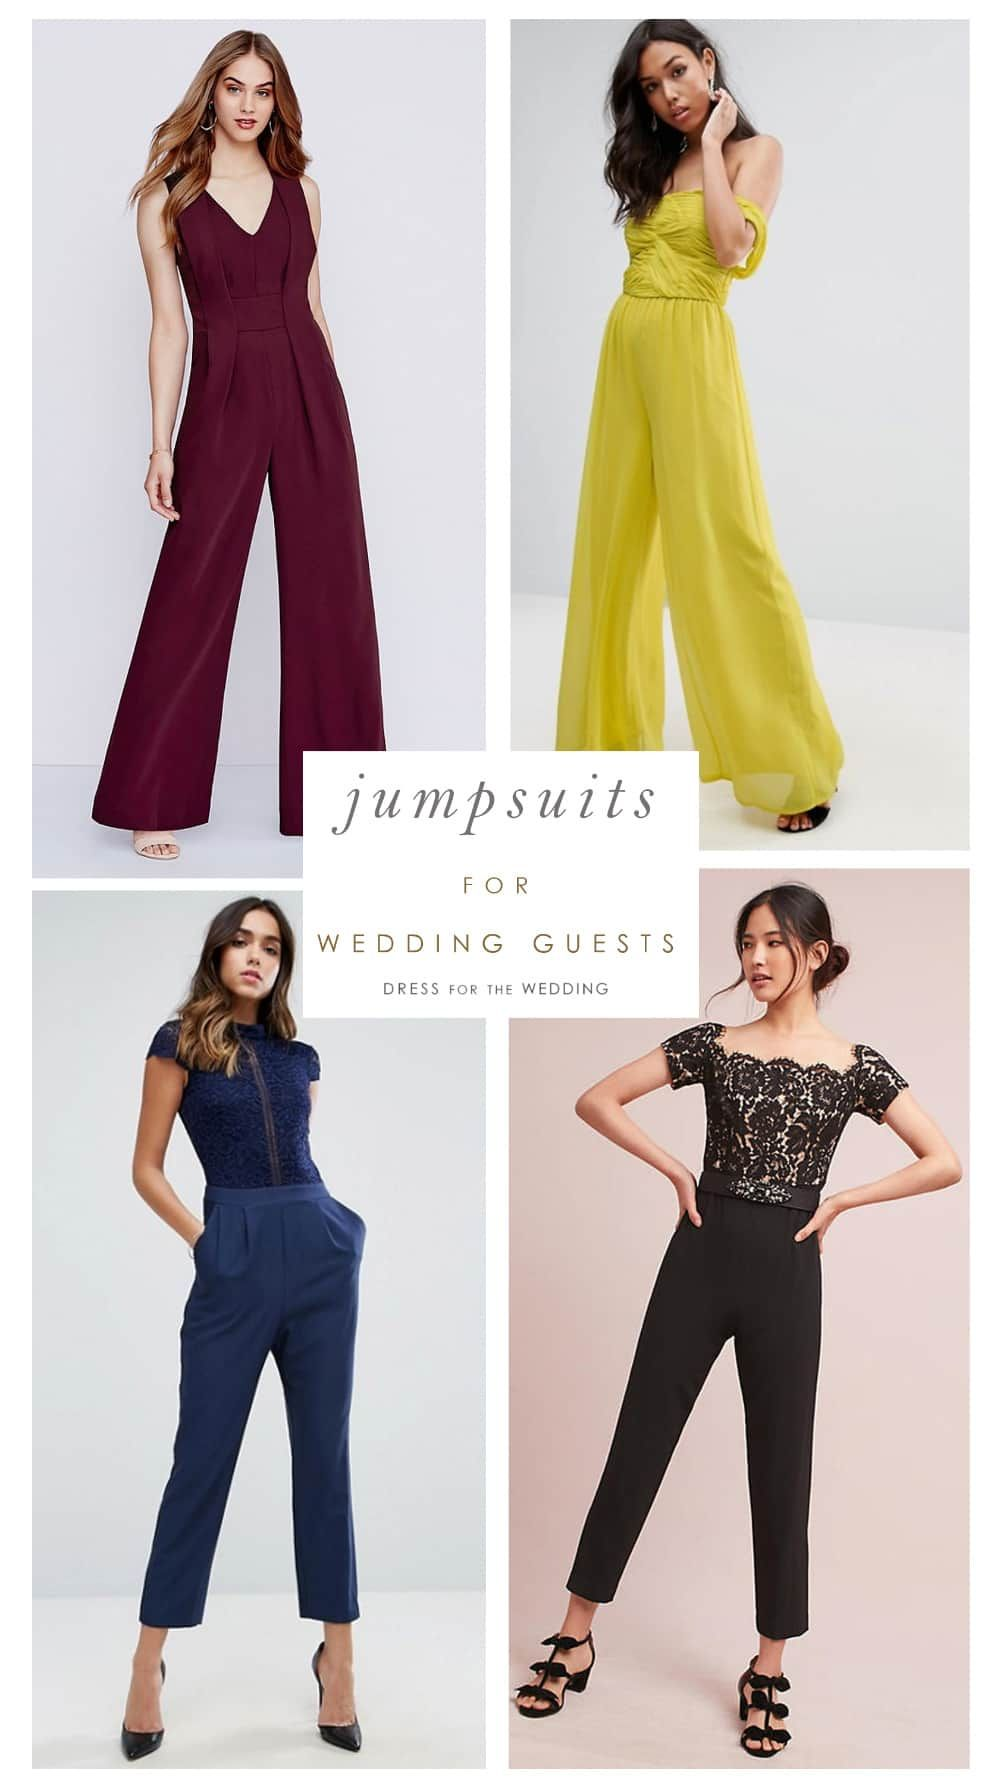 15 Jumpsuits You Can Absolutely Wear As A Wedding Guest Dress For The Wedding Dressy Jumpsuit Wedding Jumpsuit Outfit Wedding Jumpsuit Dressy